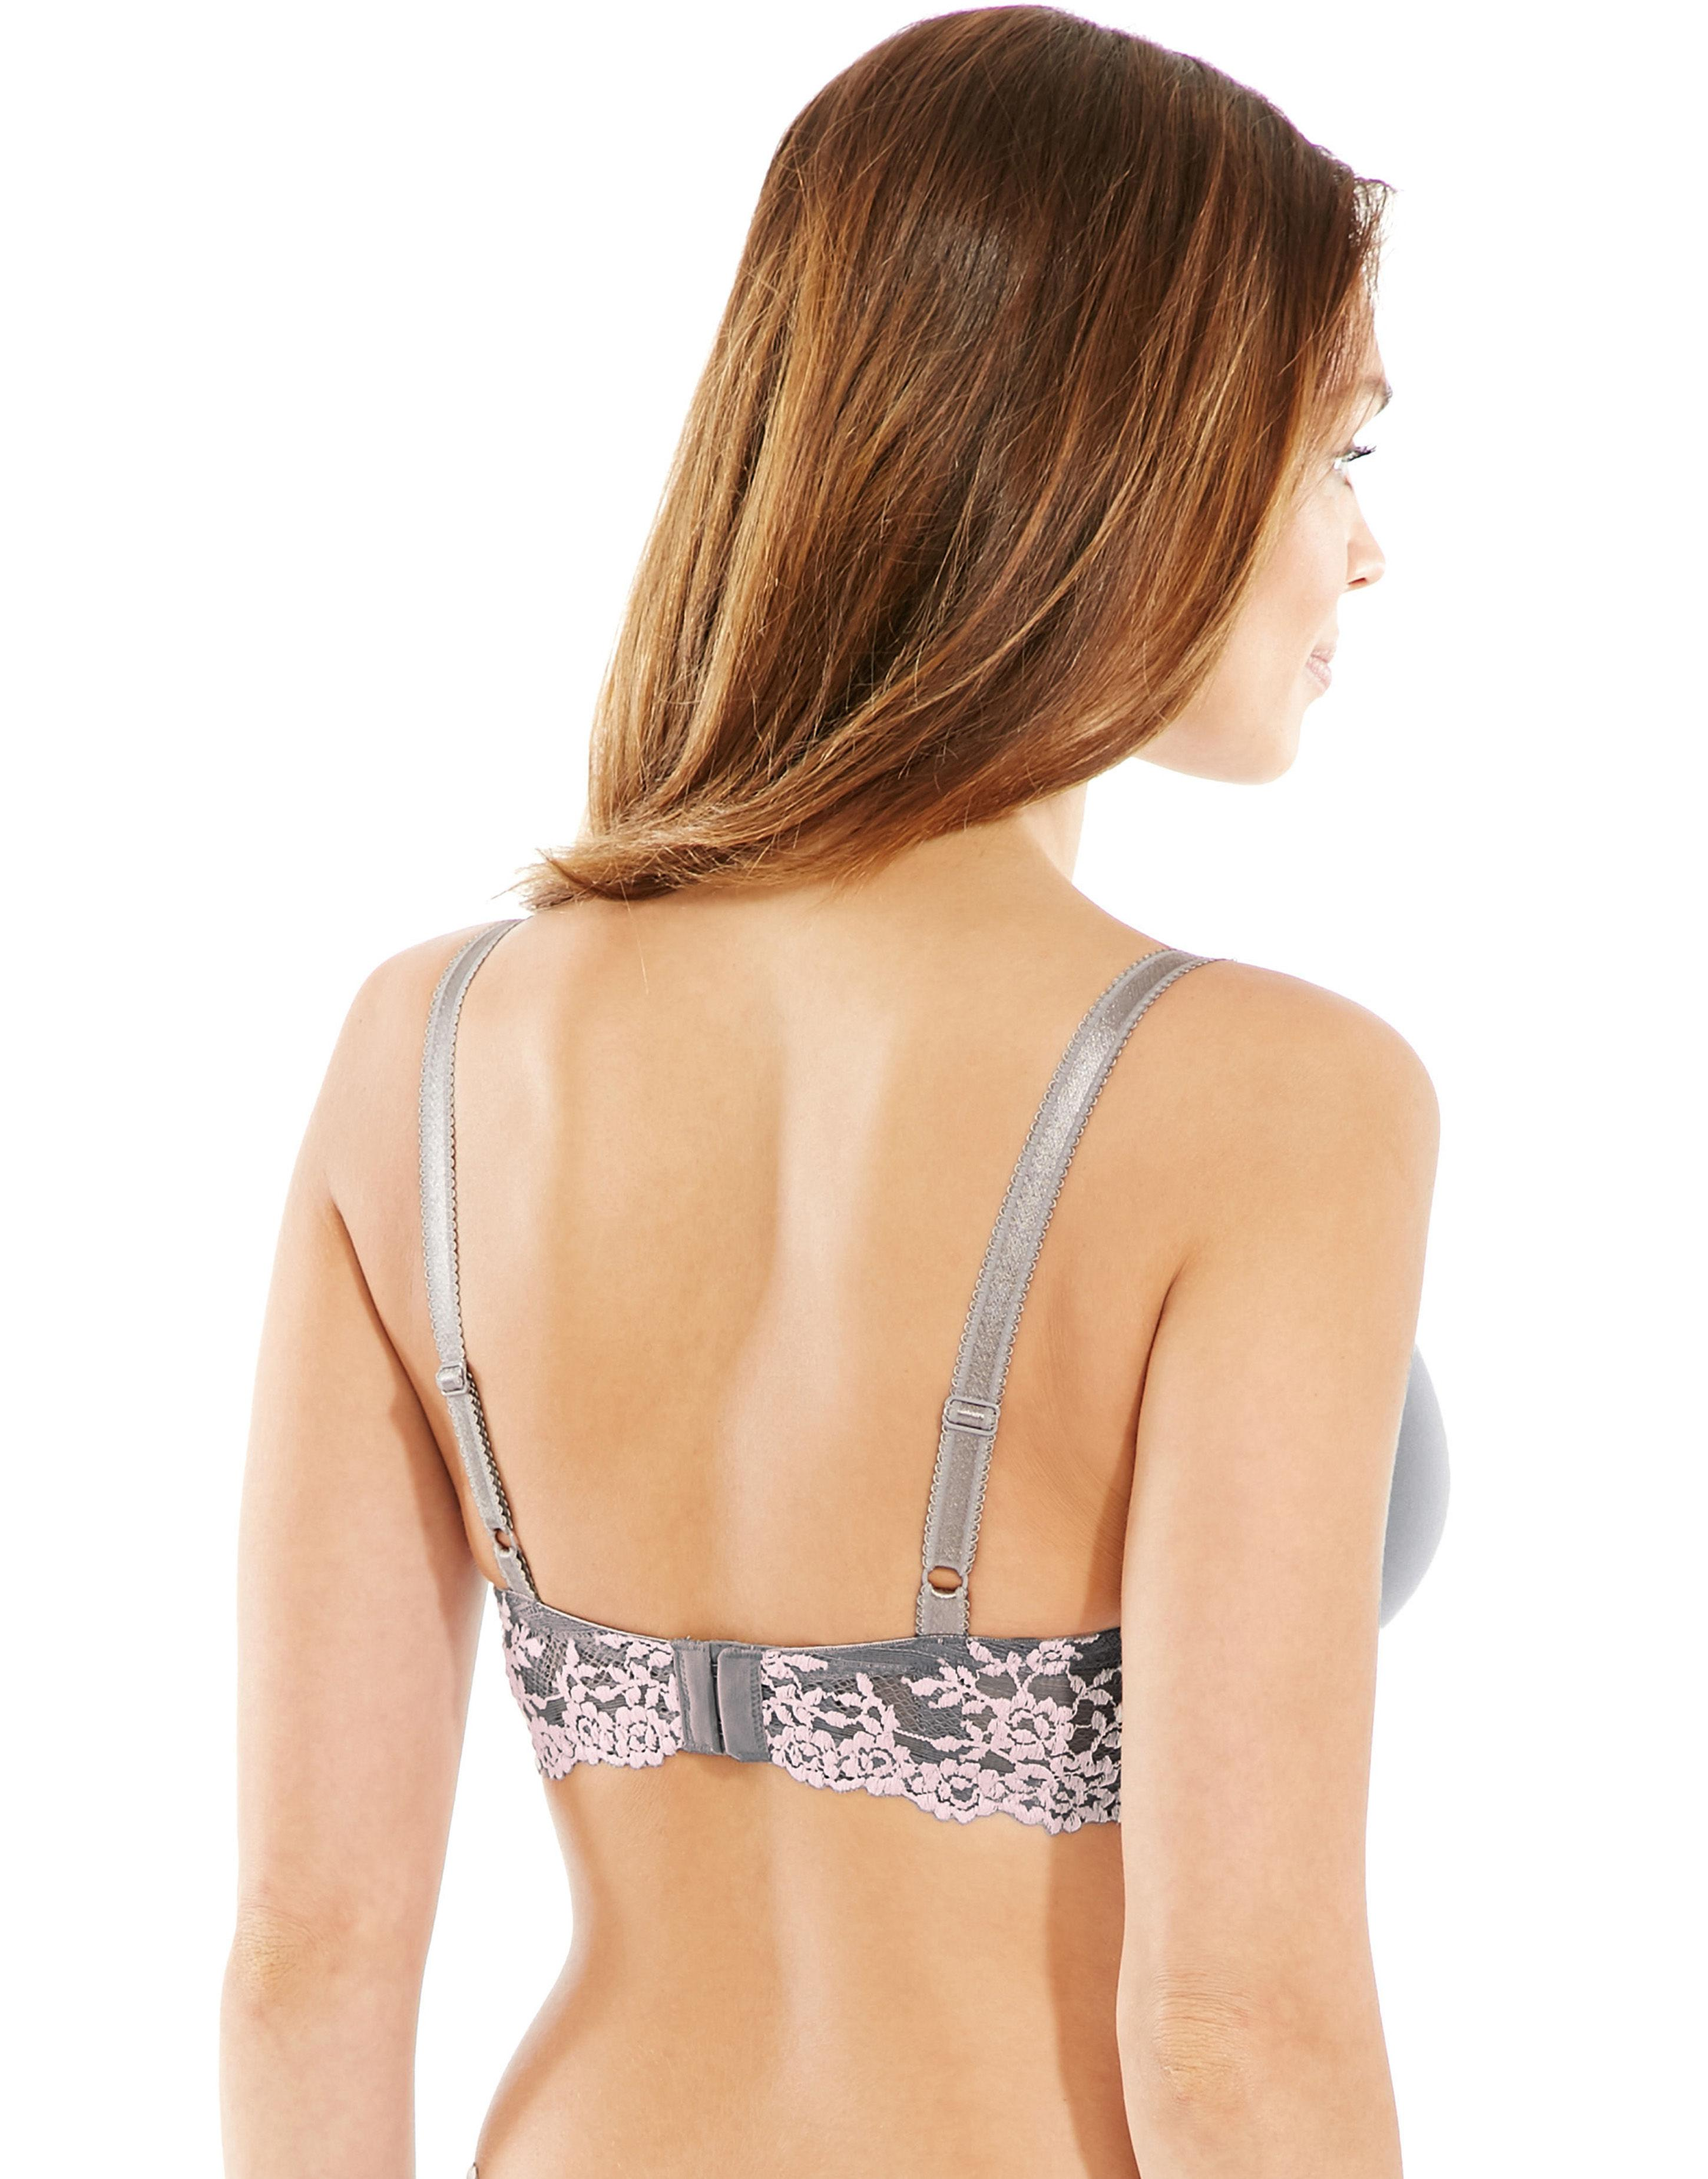 ae29c9f021 Wacoal Embrace Lace Contour Bra in Gray - Lyst